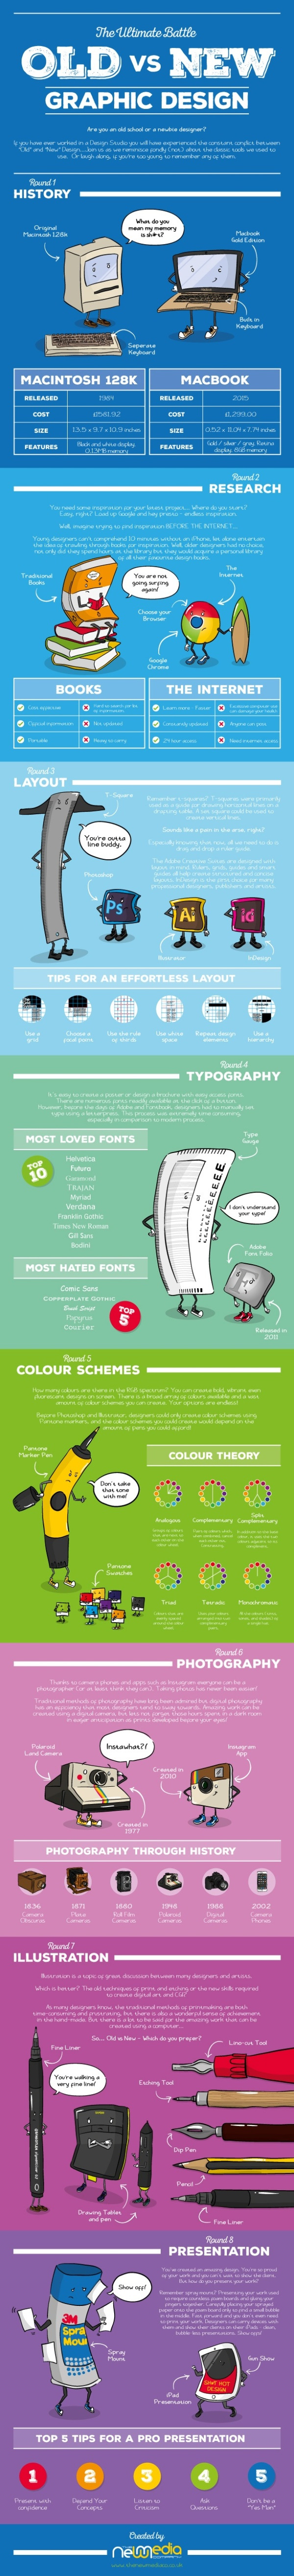 Old vs. New Graphic Design infographic